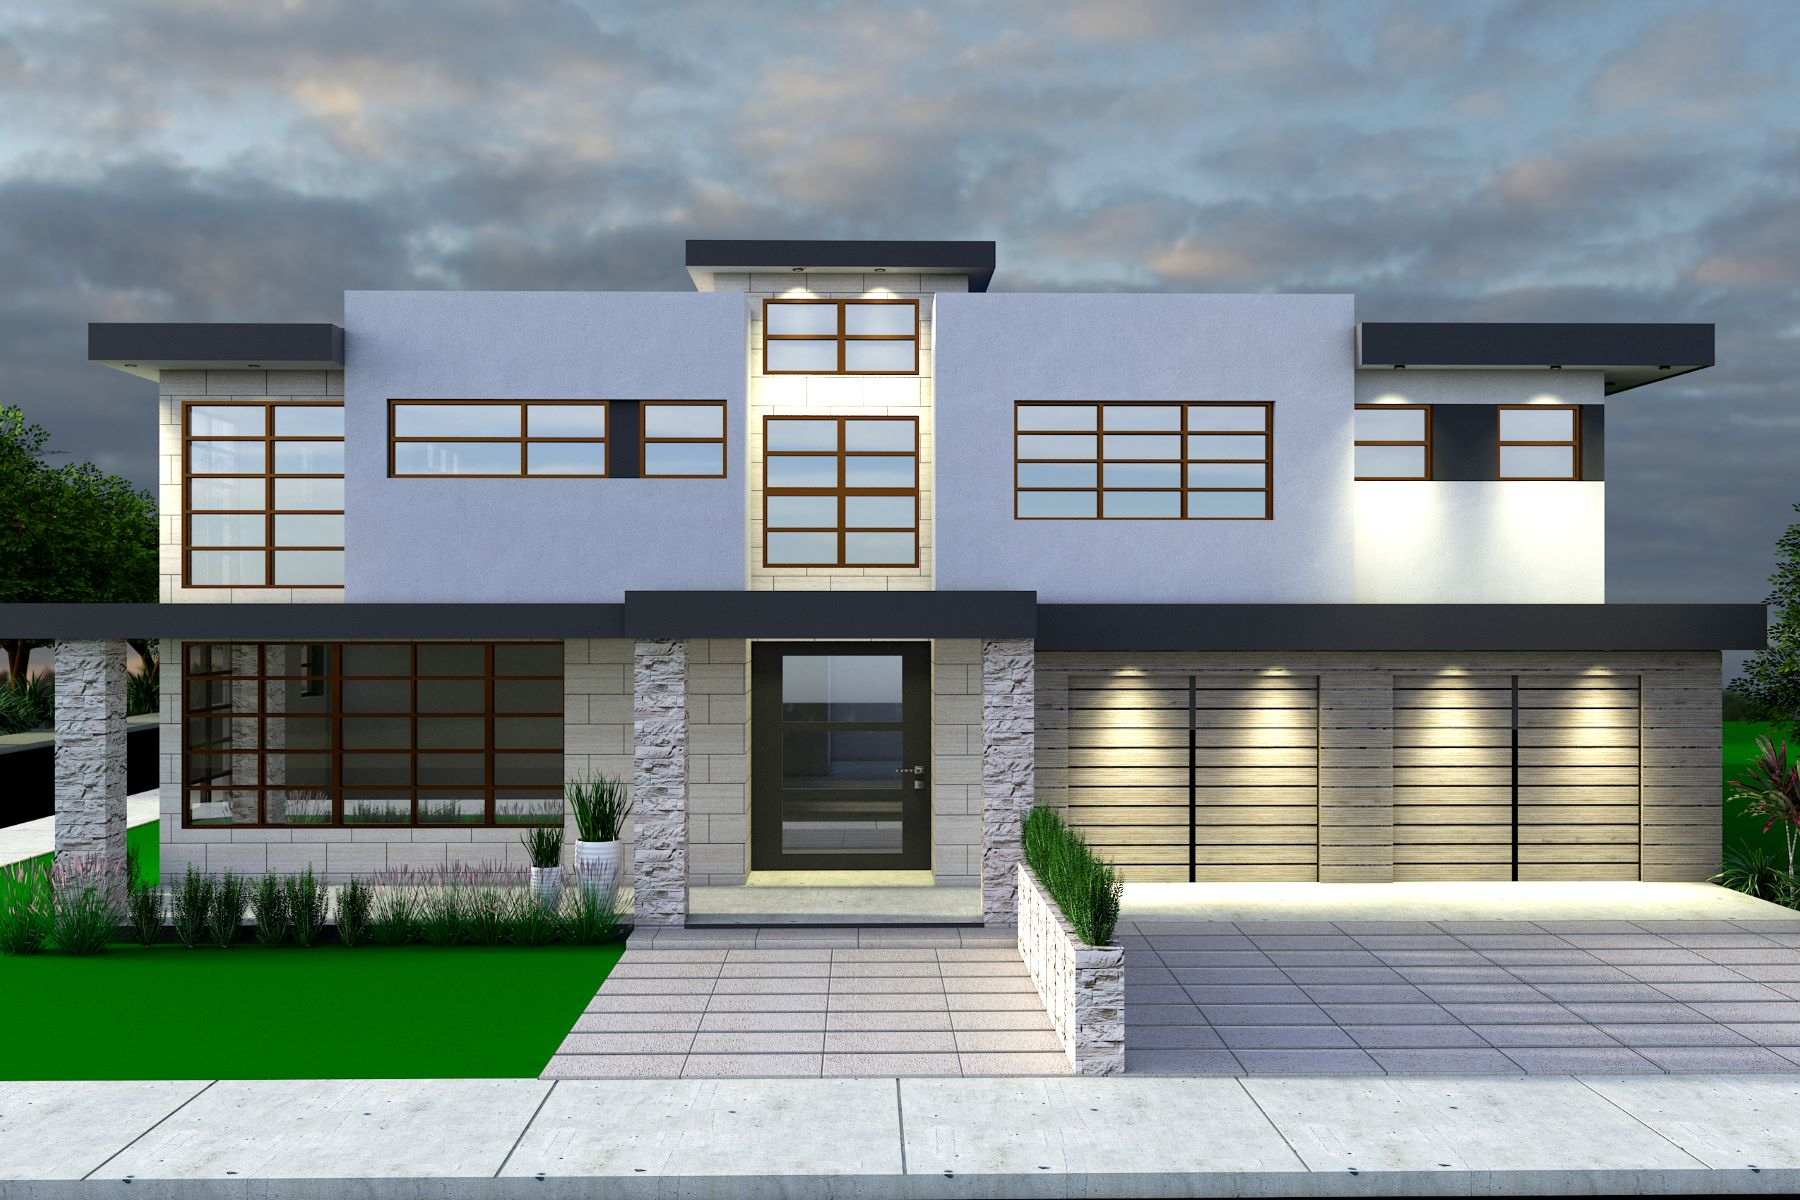 Single Family Home for Active at 1 Fairfax Street 1 Fairfax St Denver, Colorado 80220 United States